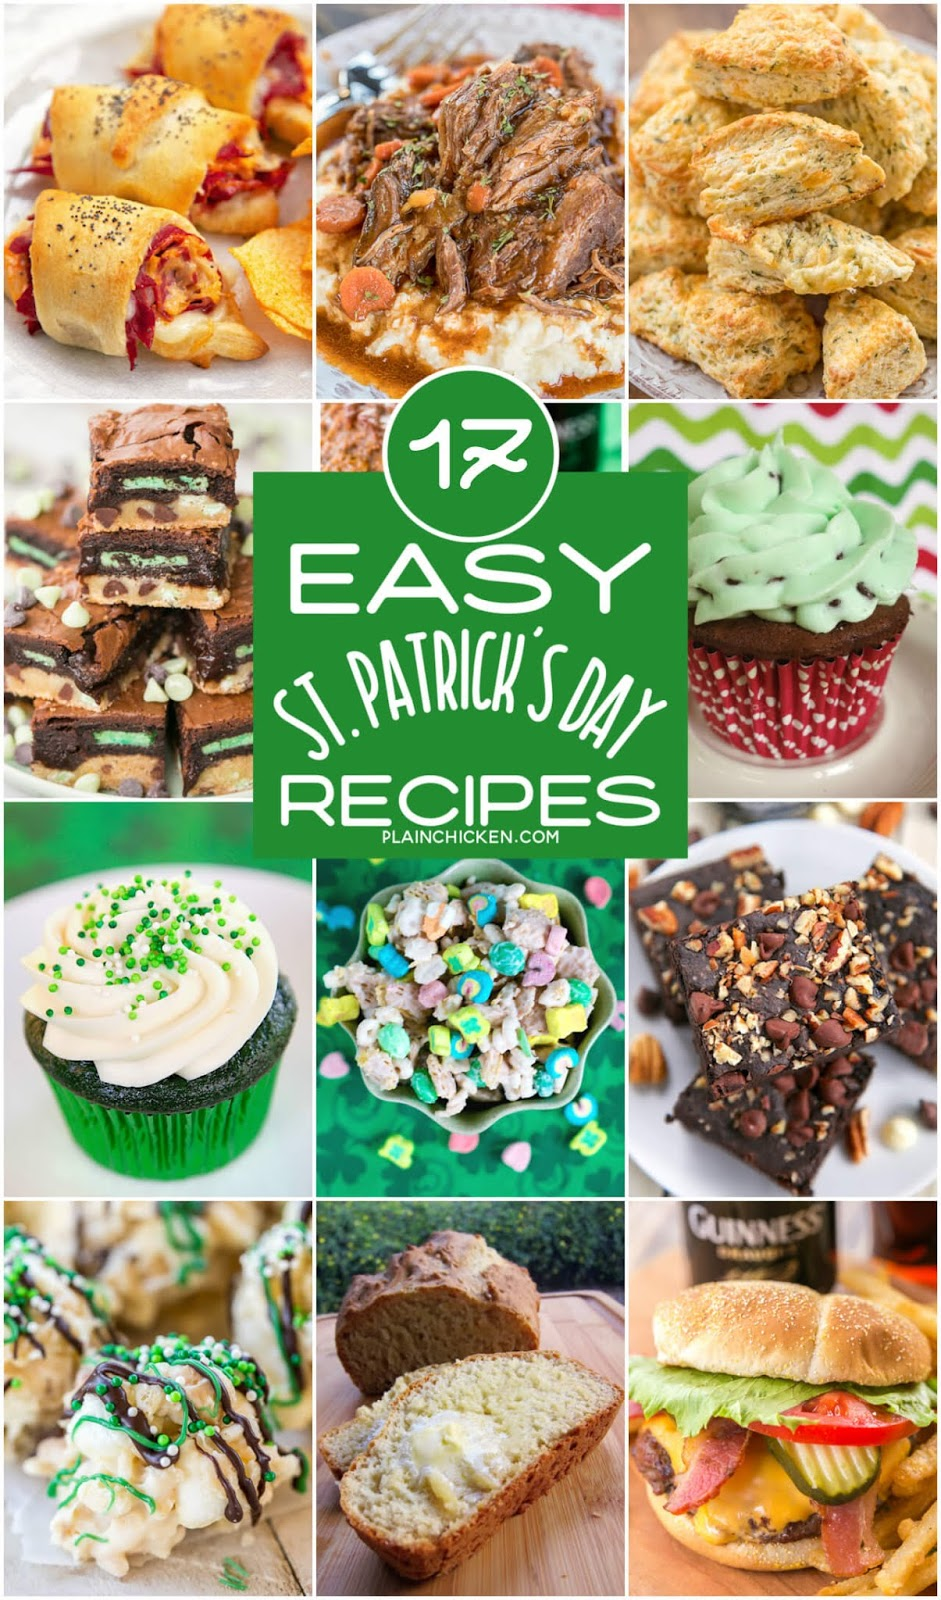 collage of recipes for St. Patrick's Day